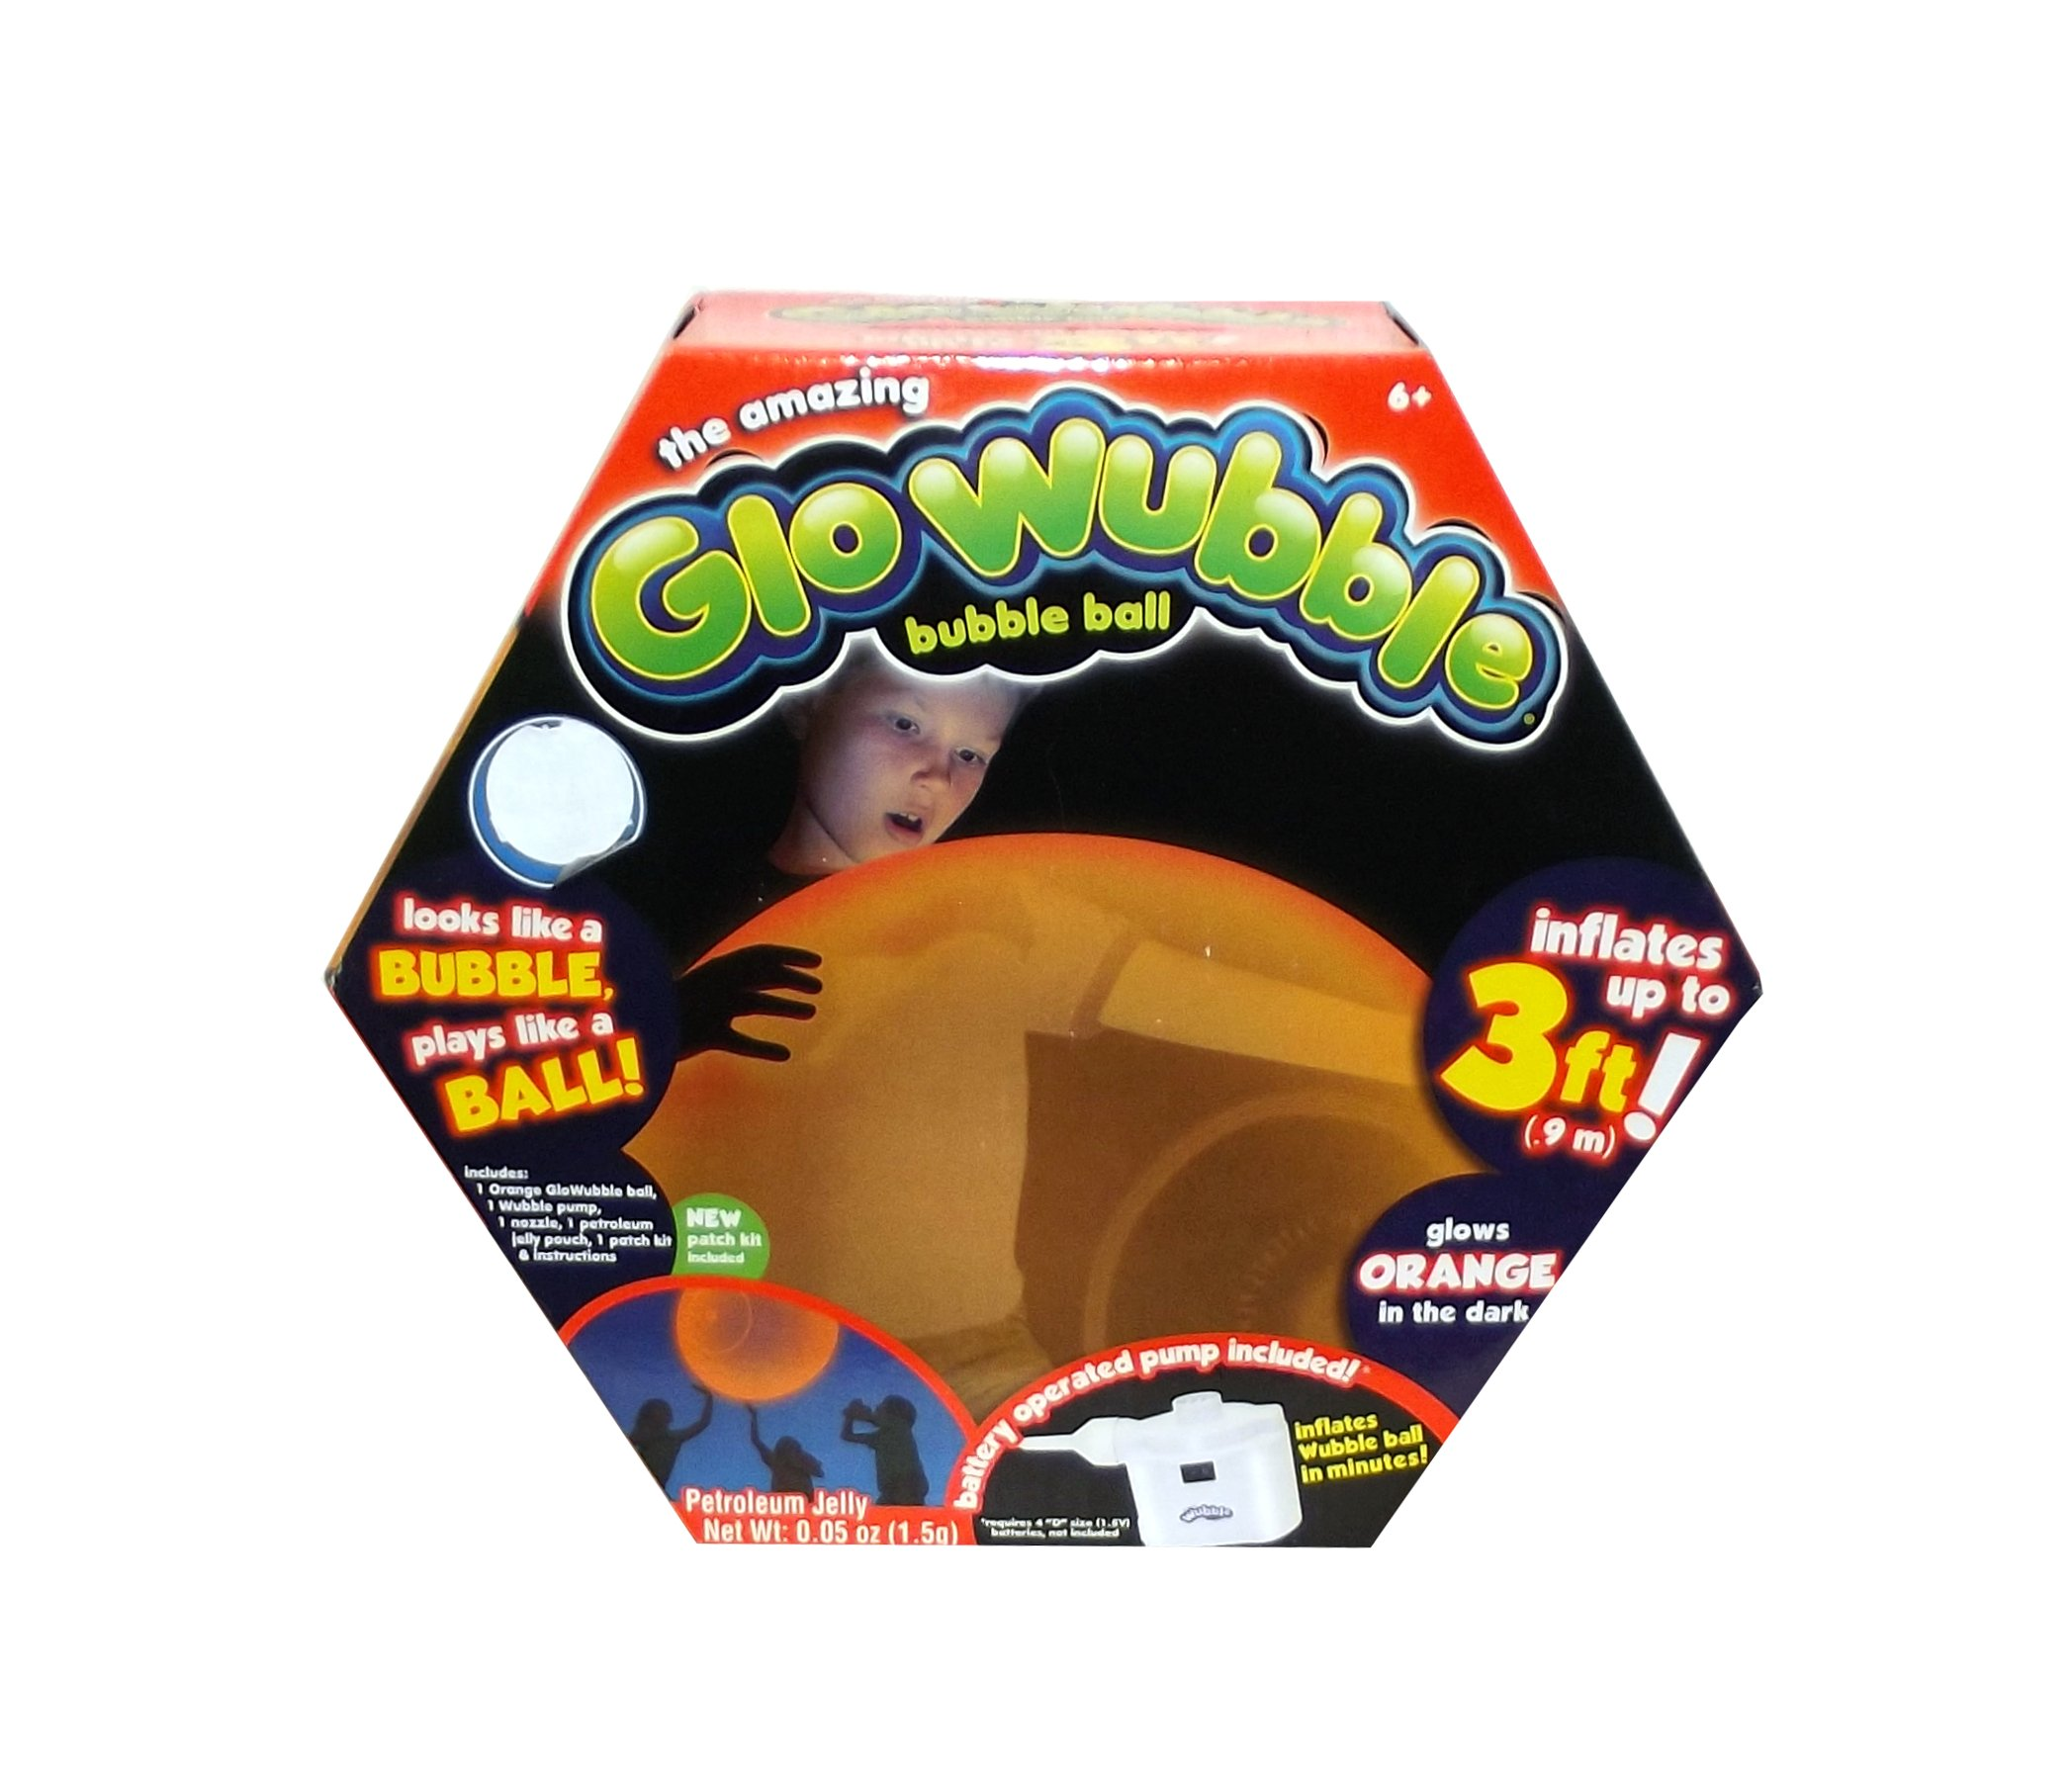 Glo Wubble Bubble Ball The Amazing, Orange by Glo Wubble Bubble Ball